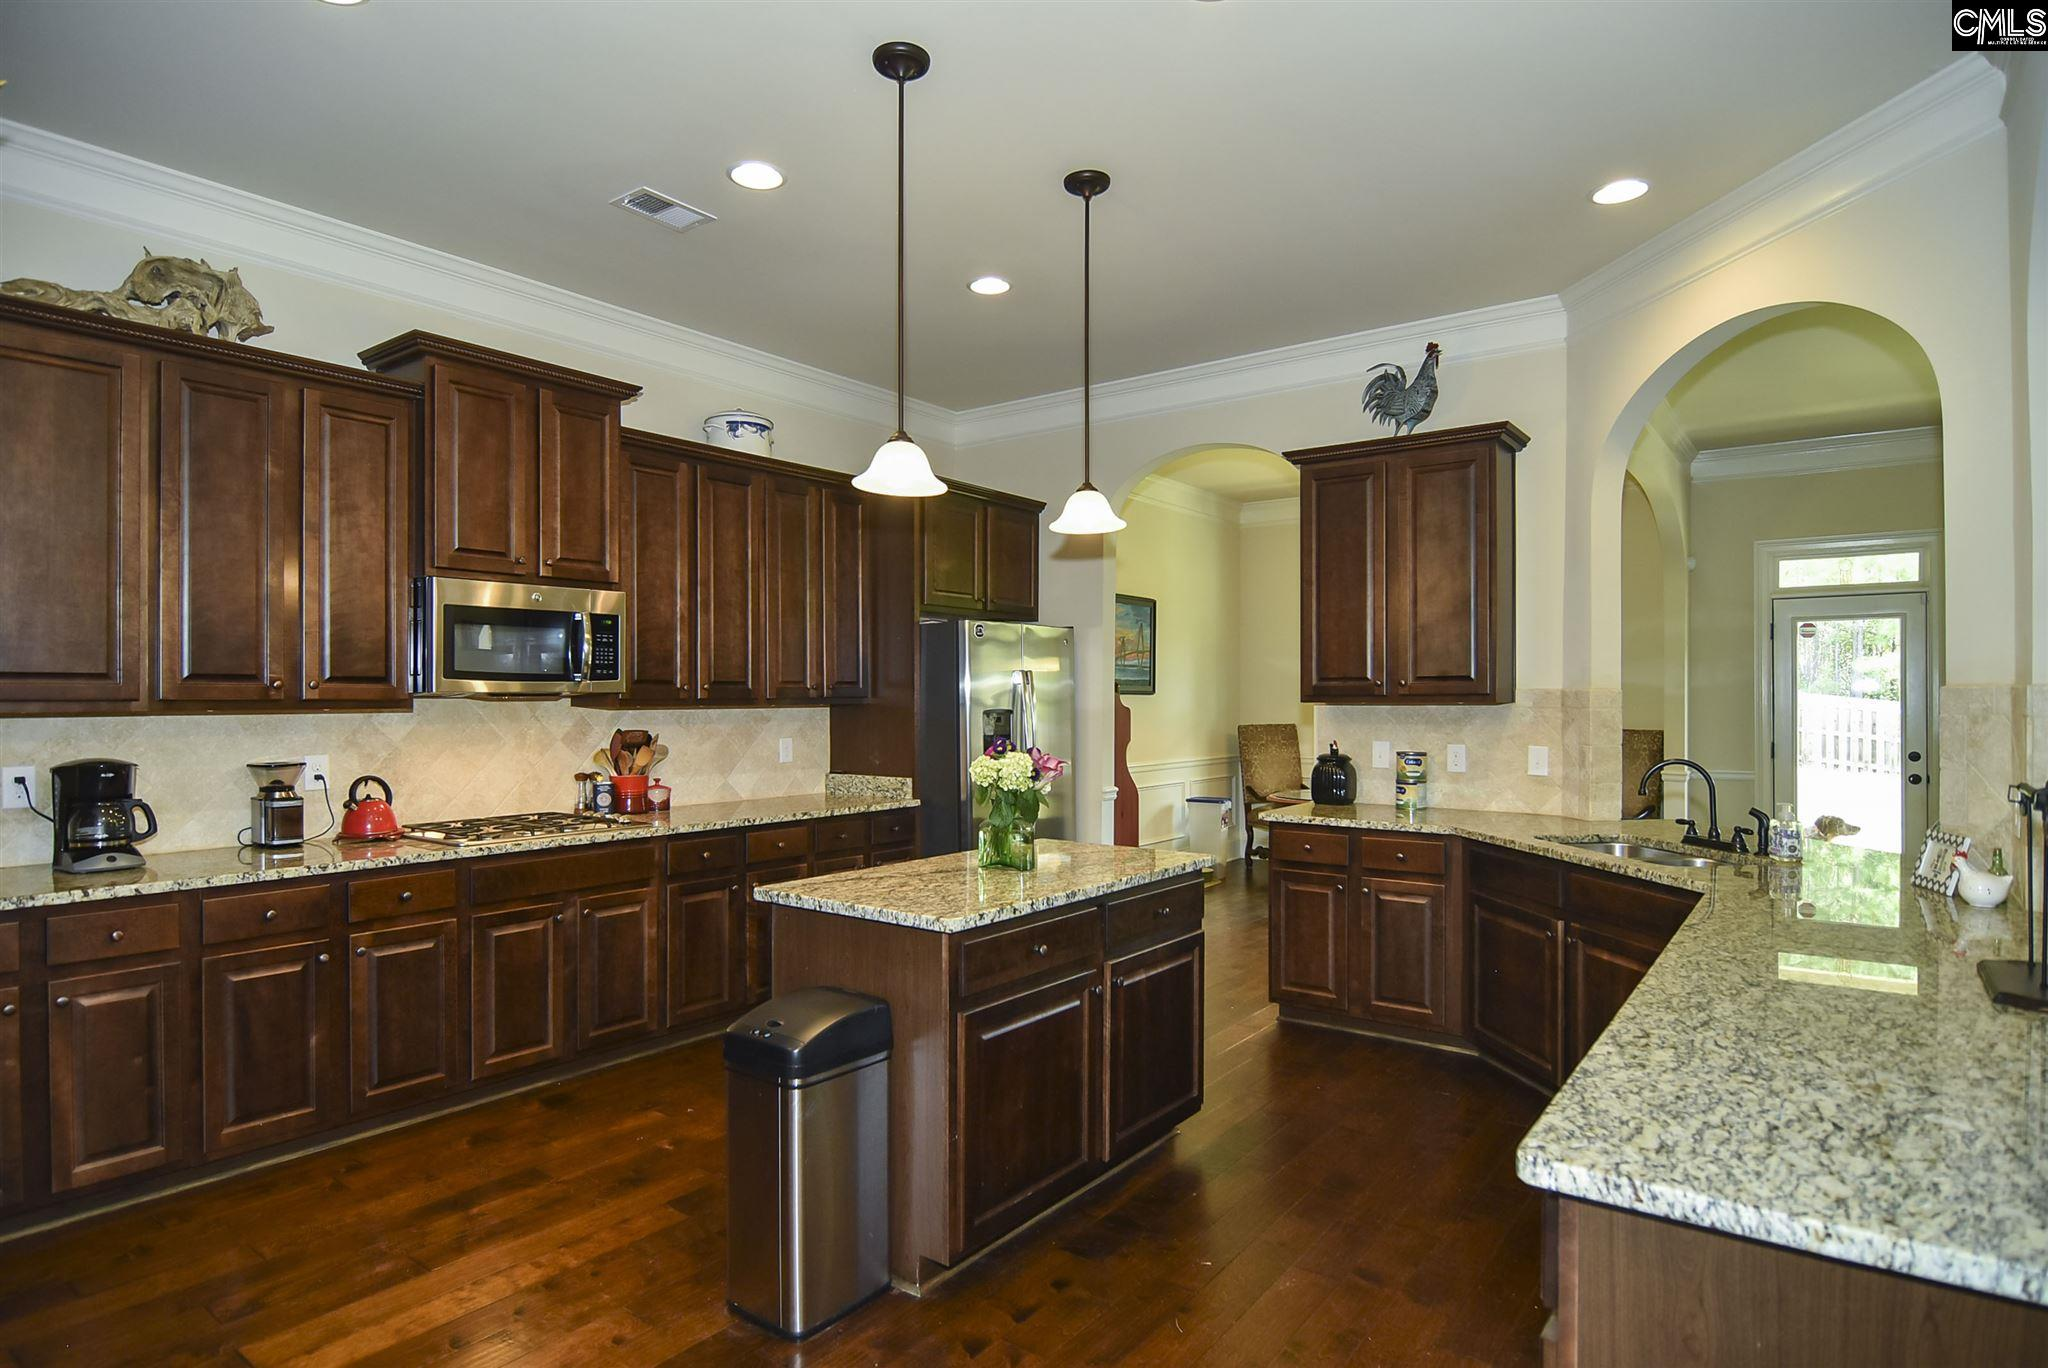 363 Summers Trace Blythewood, SC 29016